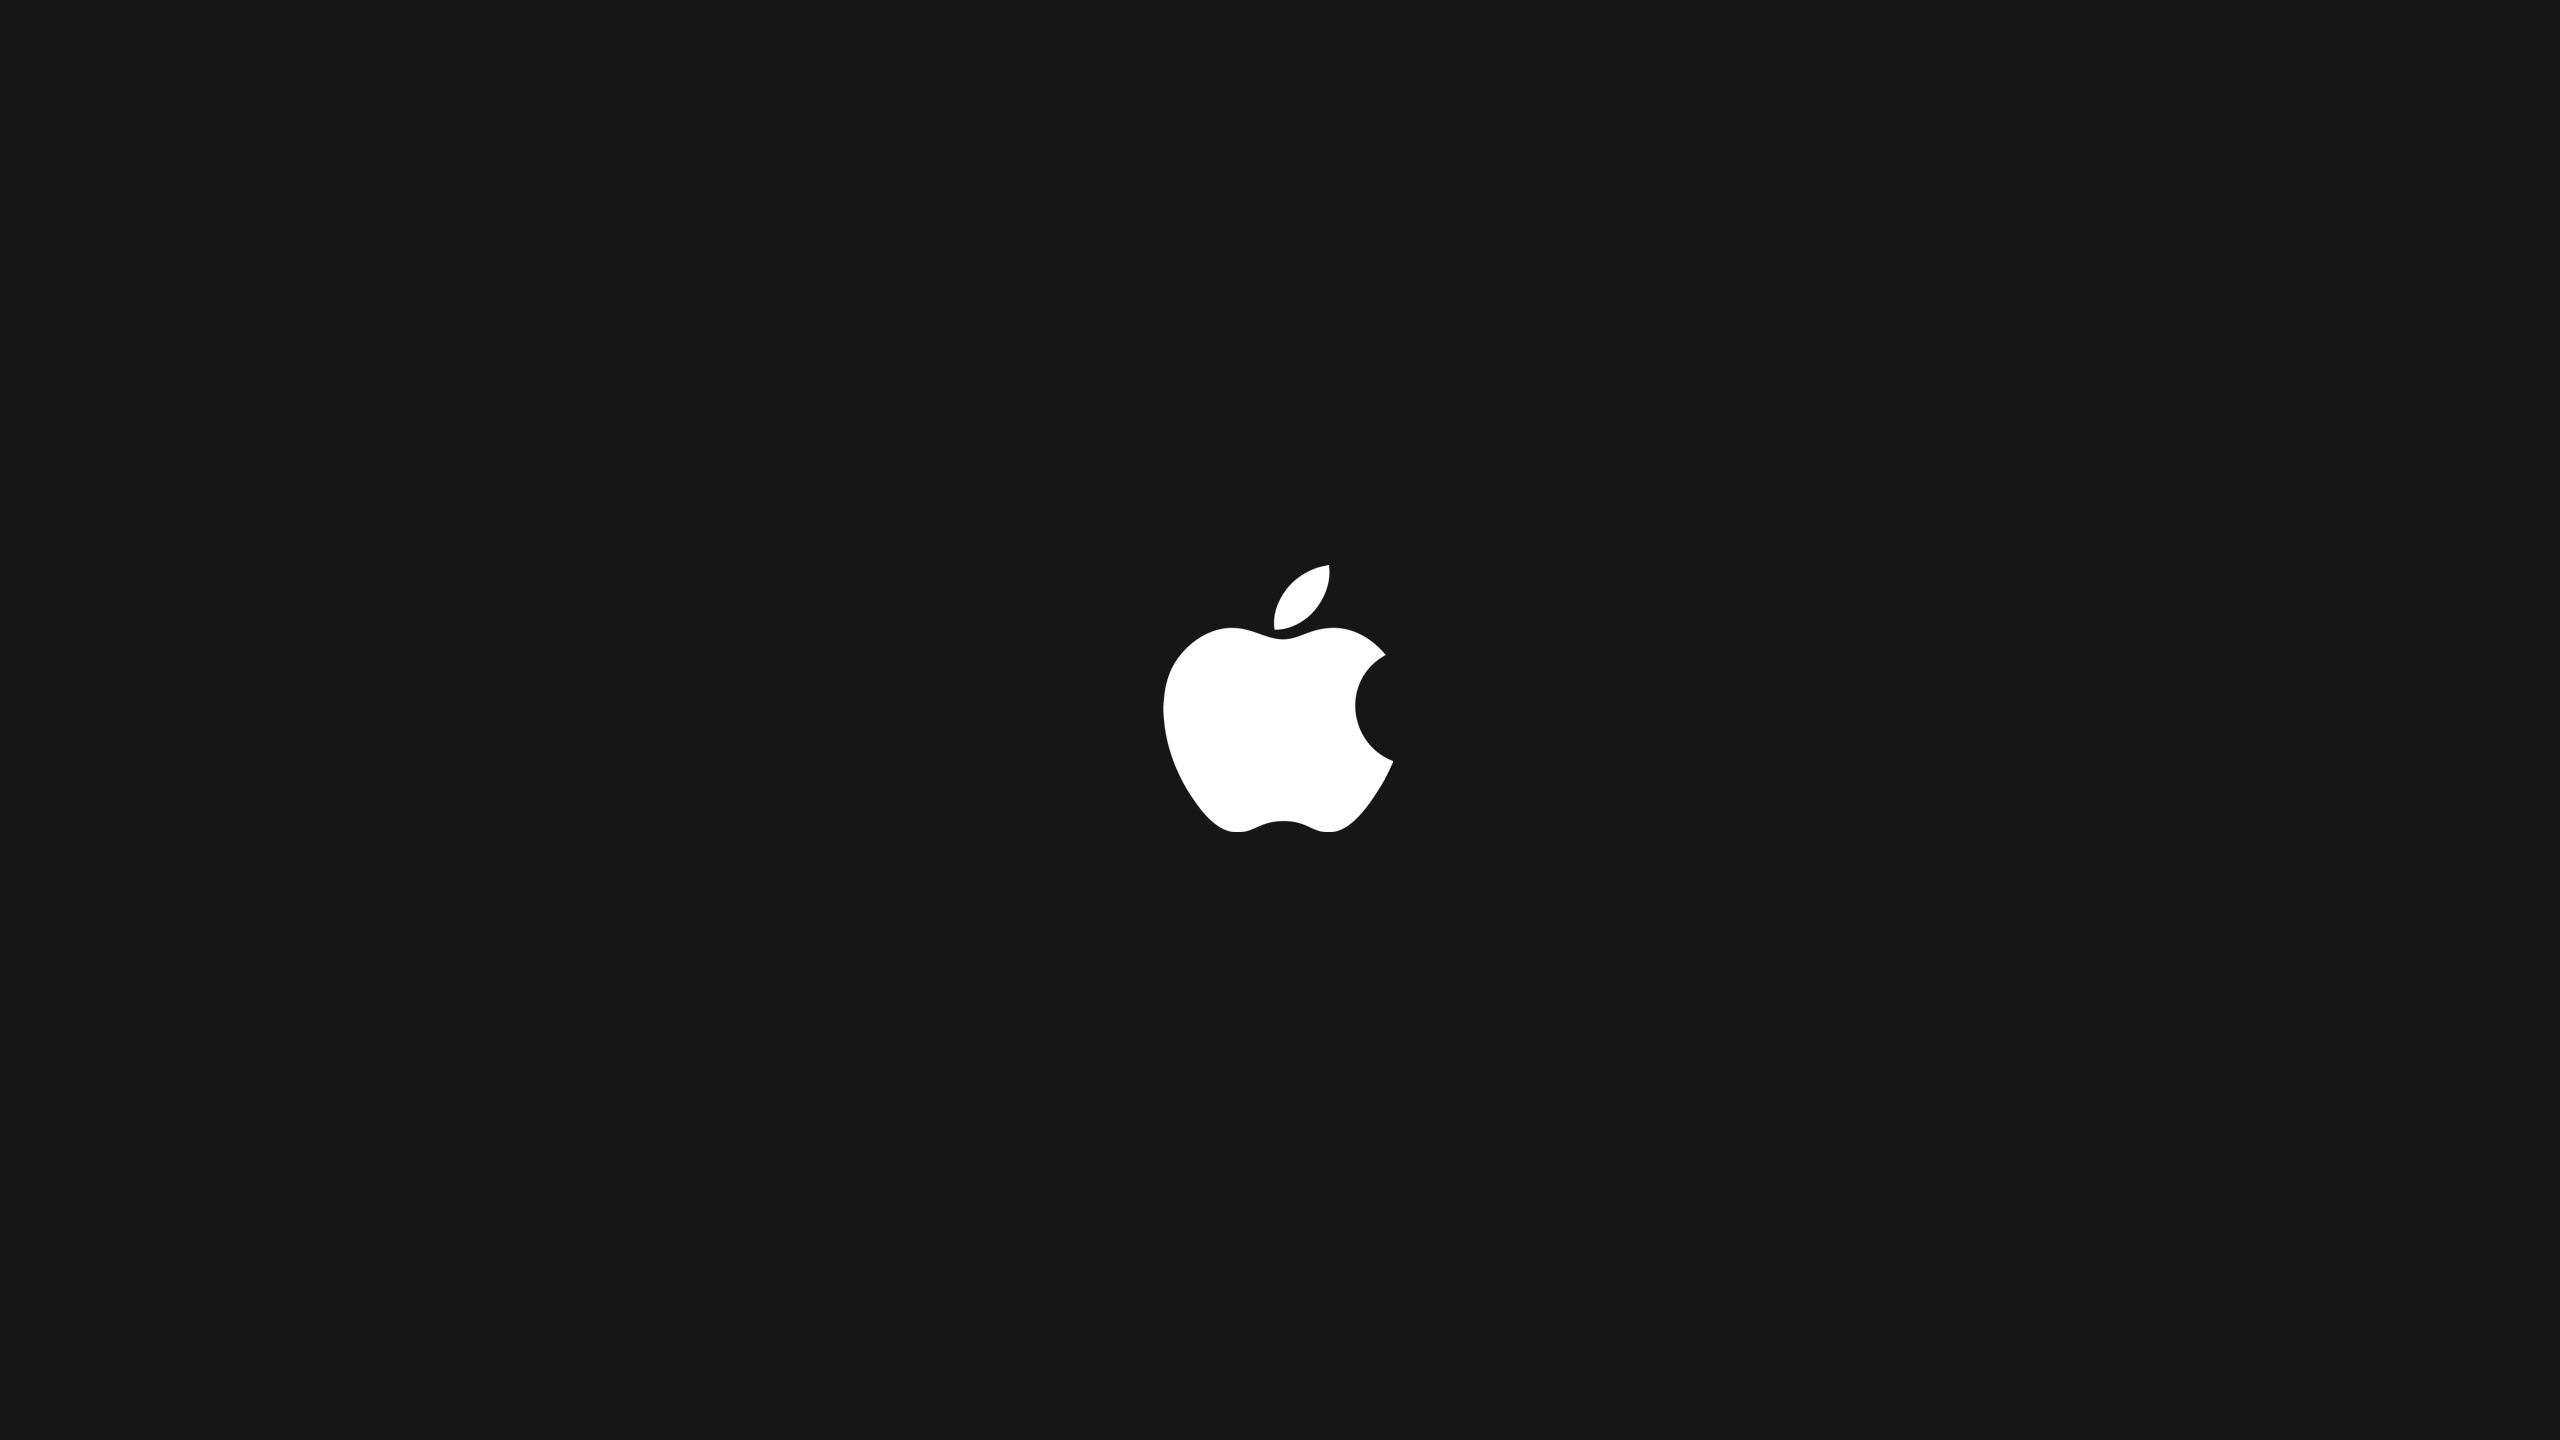 apple logo black wallpapers 4765 2560x1440